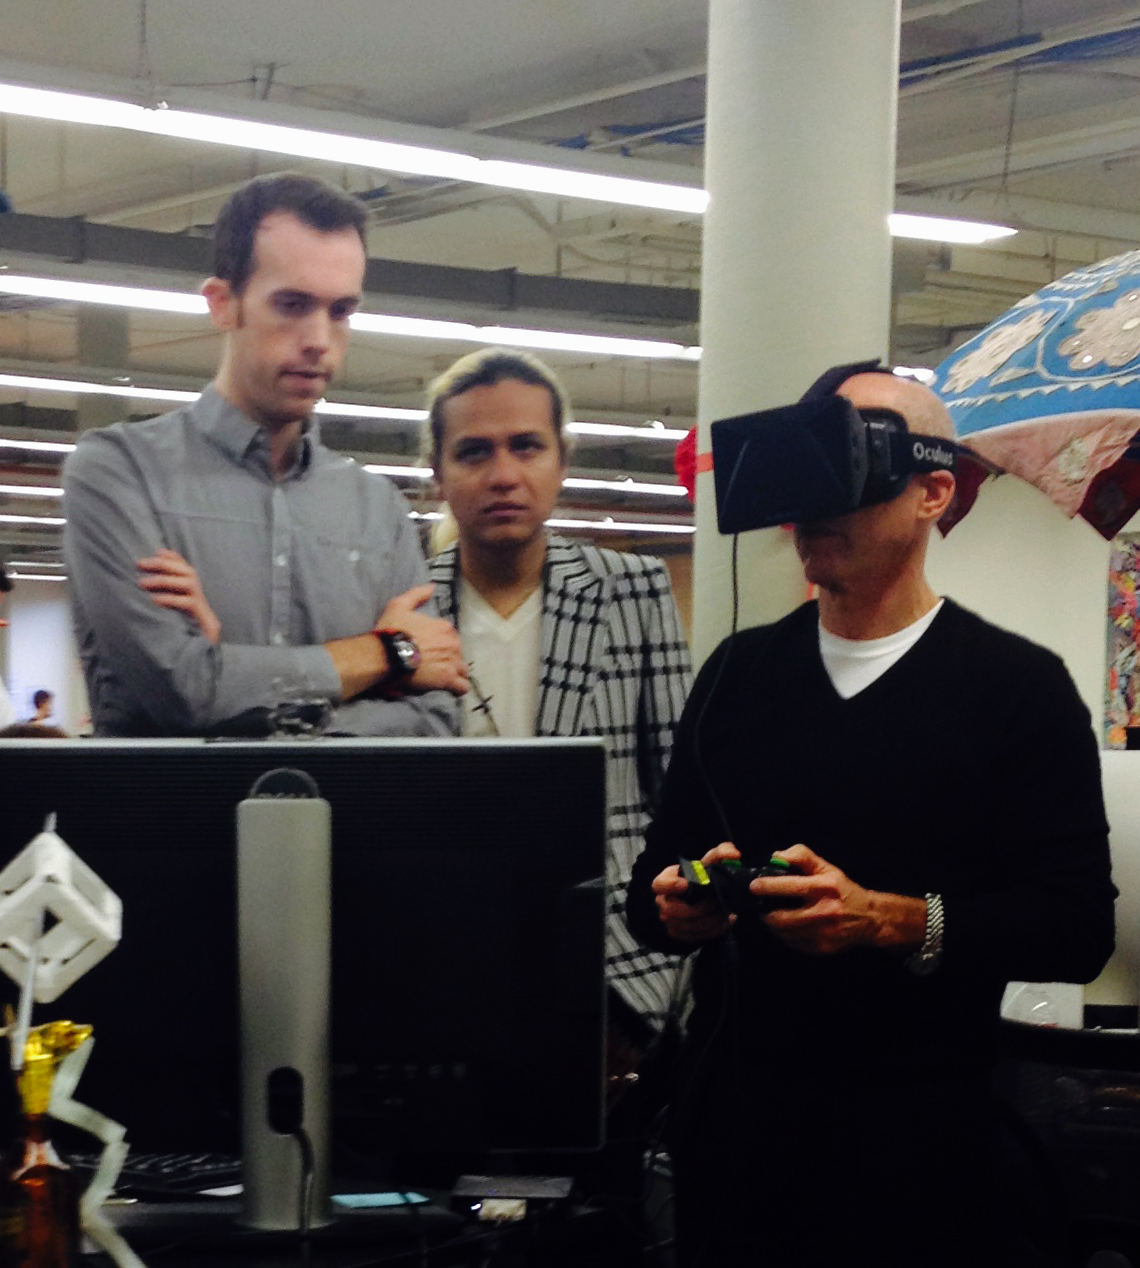 2014: Me with Jeffrey Katzenberg (in the Oculus DK1) looking at 'Dragons' in UE4.